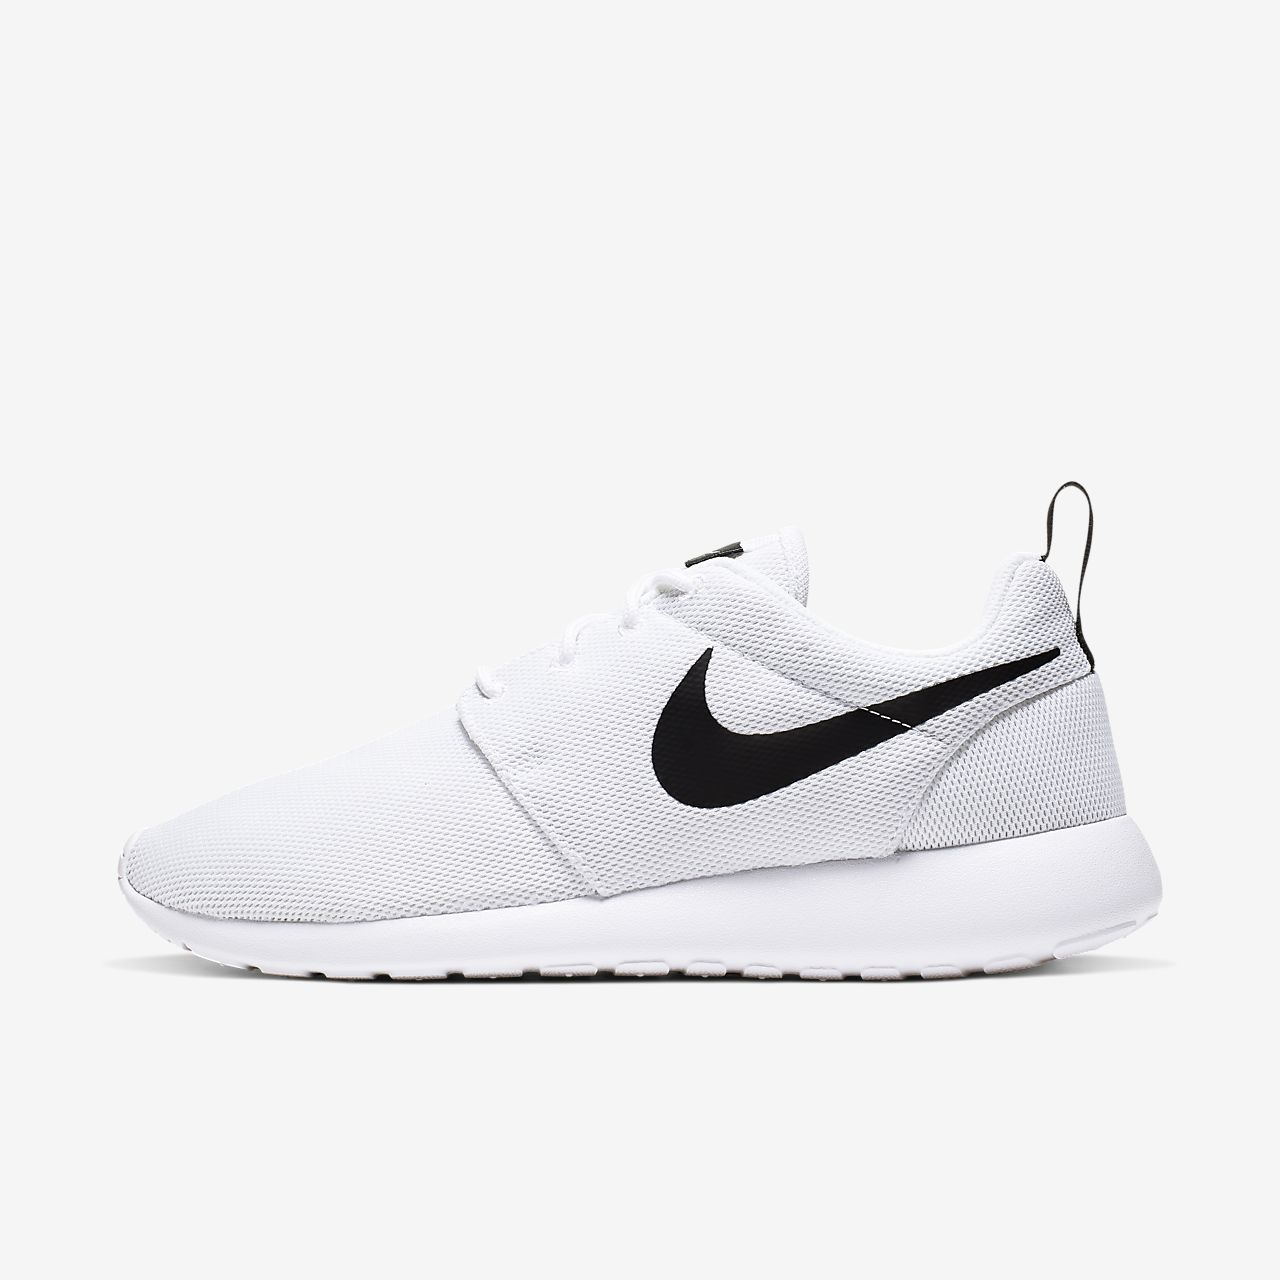 ... Nike Roshe One Women's Shoe